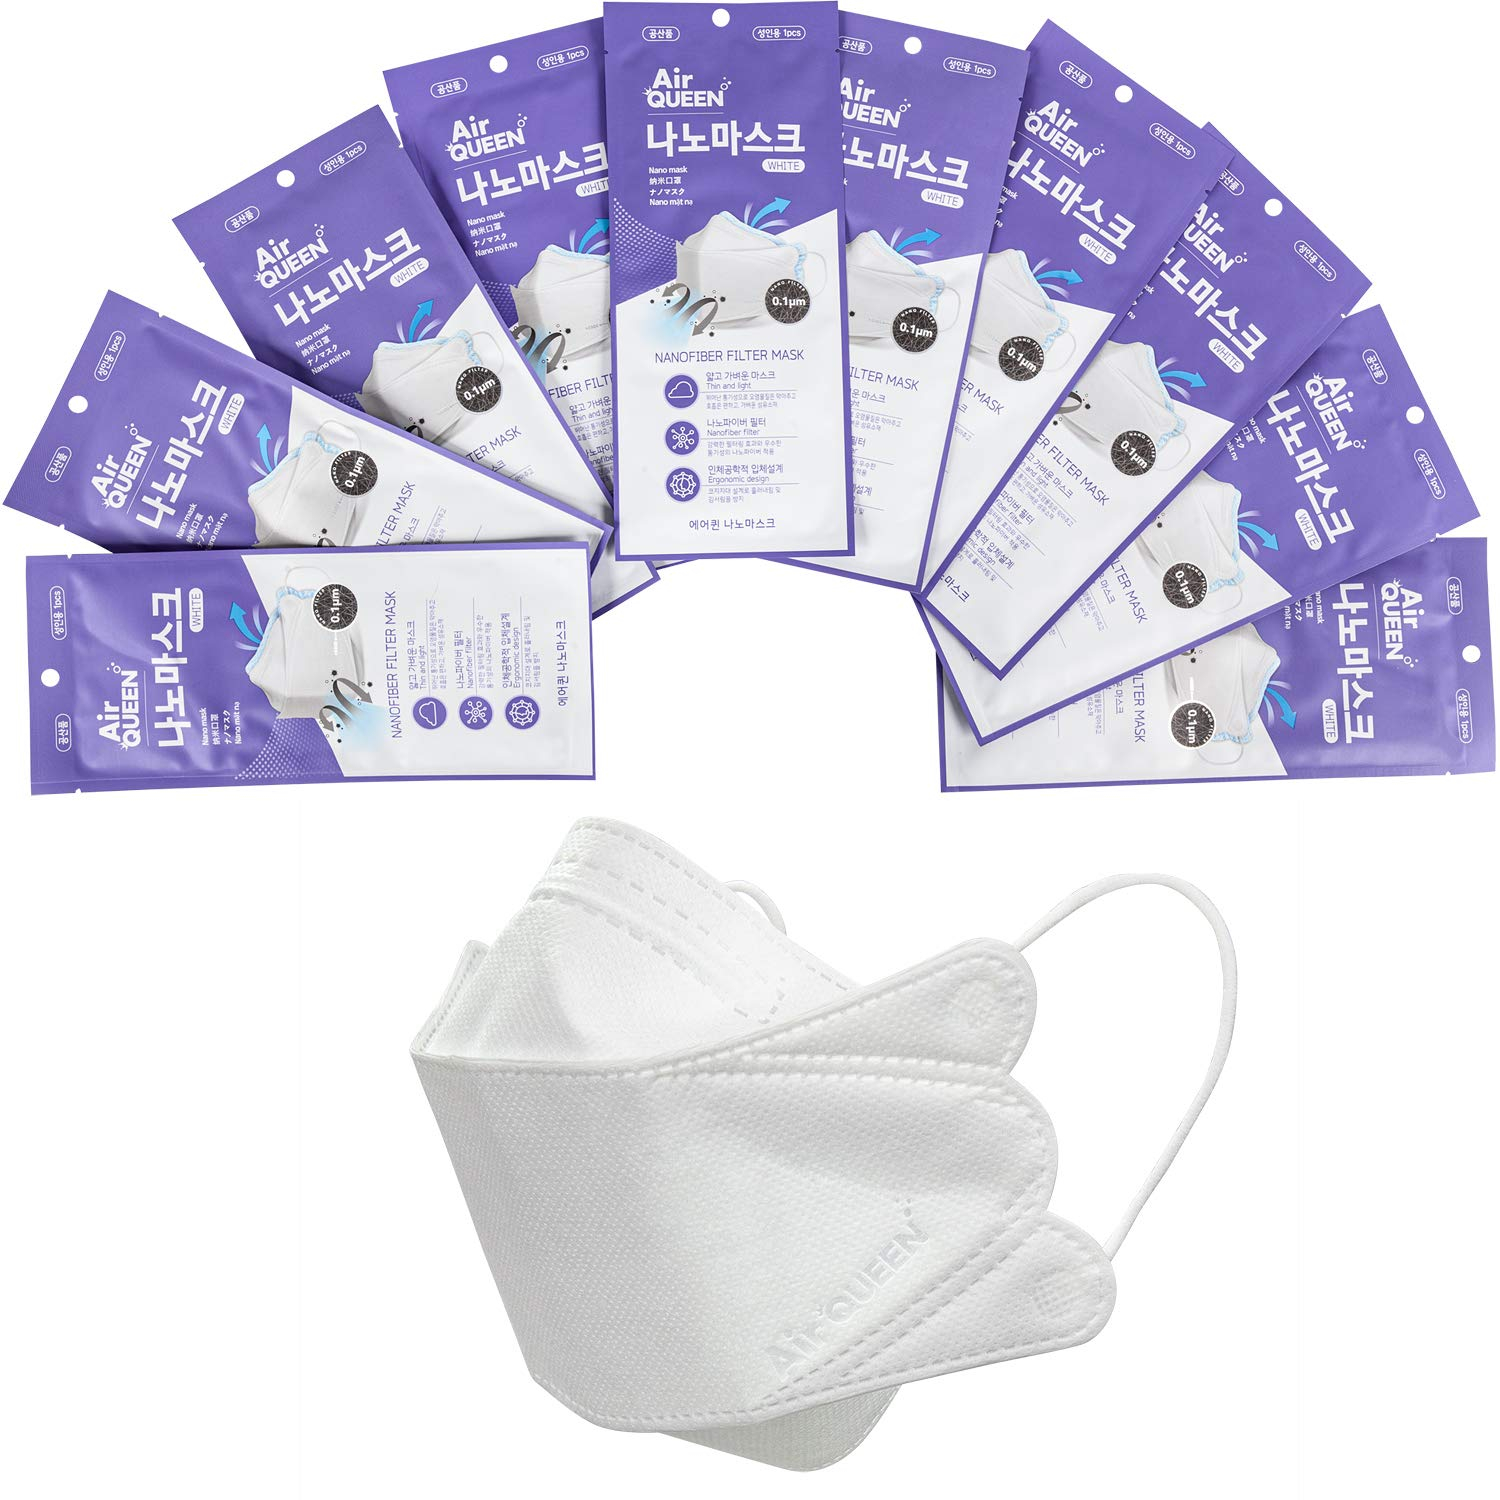 Air Queen PM95 Nano Filter Face Mask 100 PACK